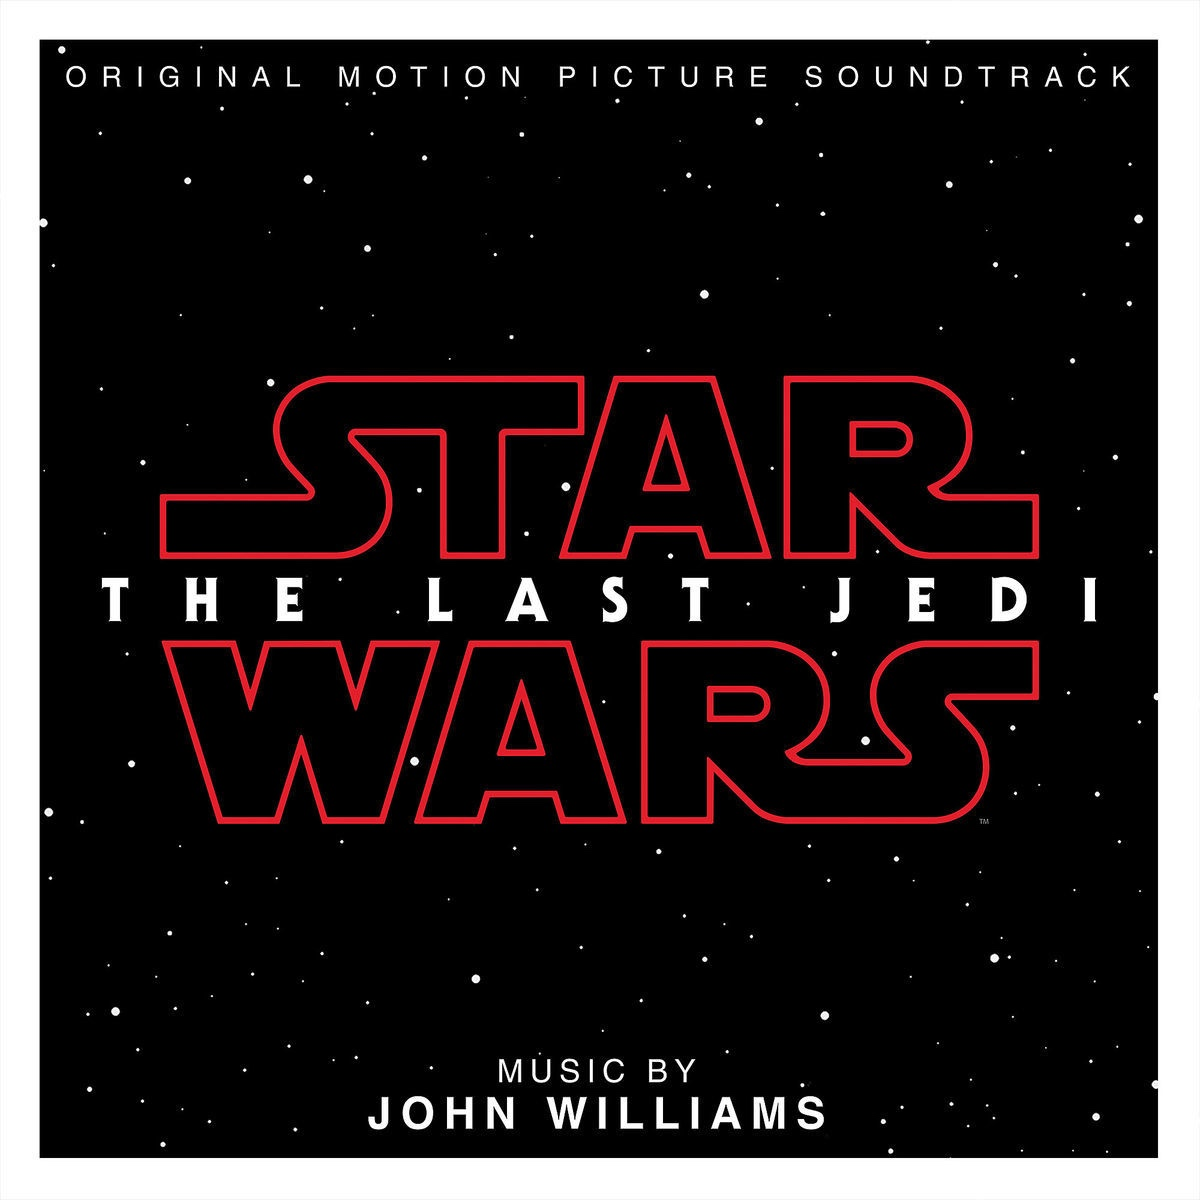 Star Wars | John Williams & John Powell Nominated for a Grammy